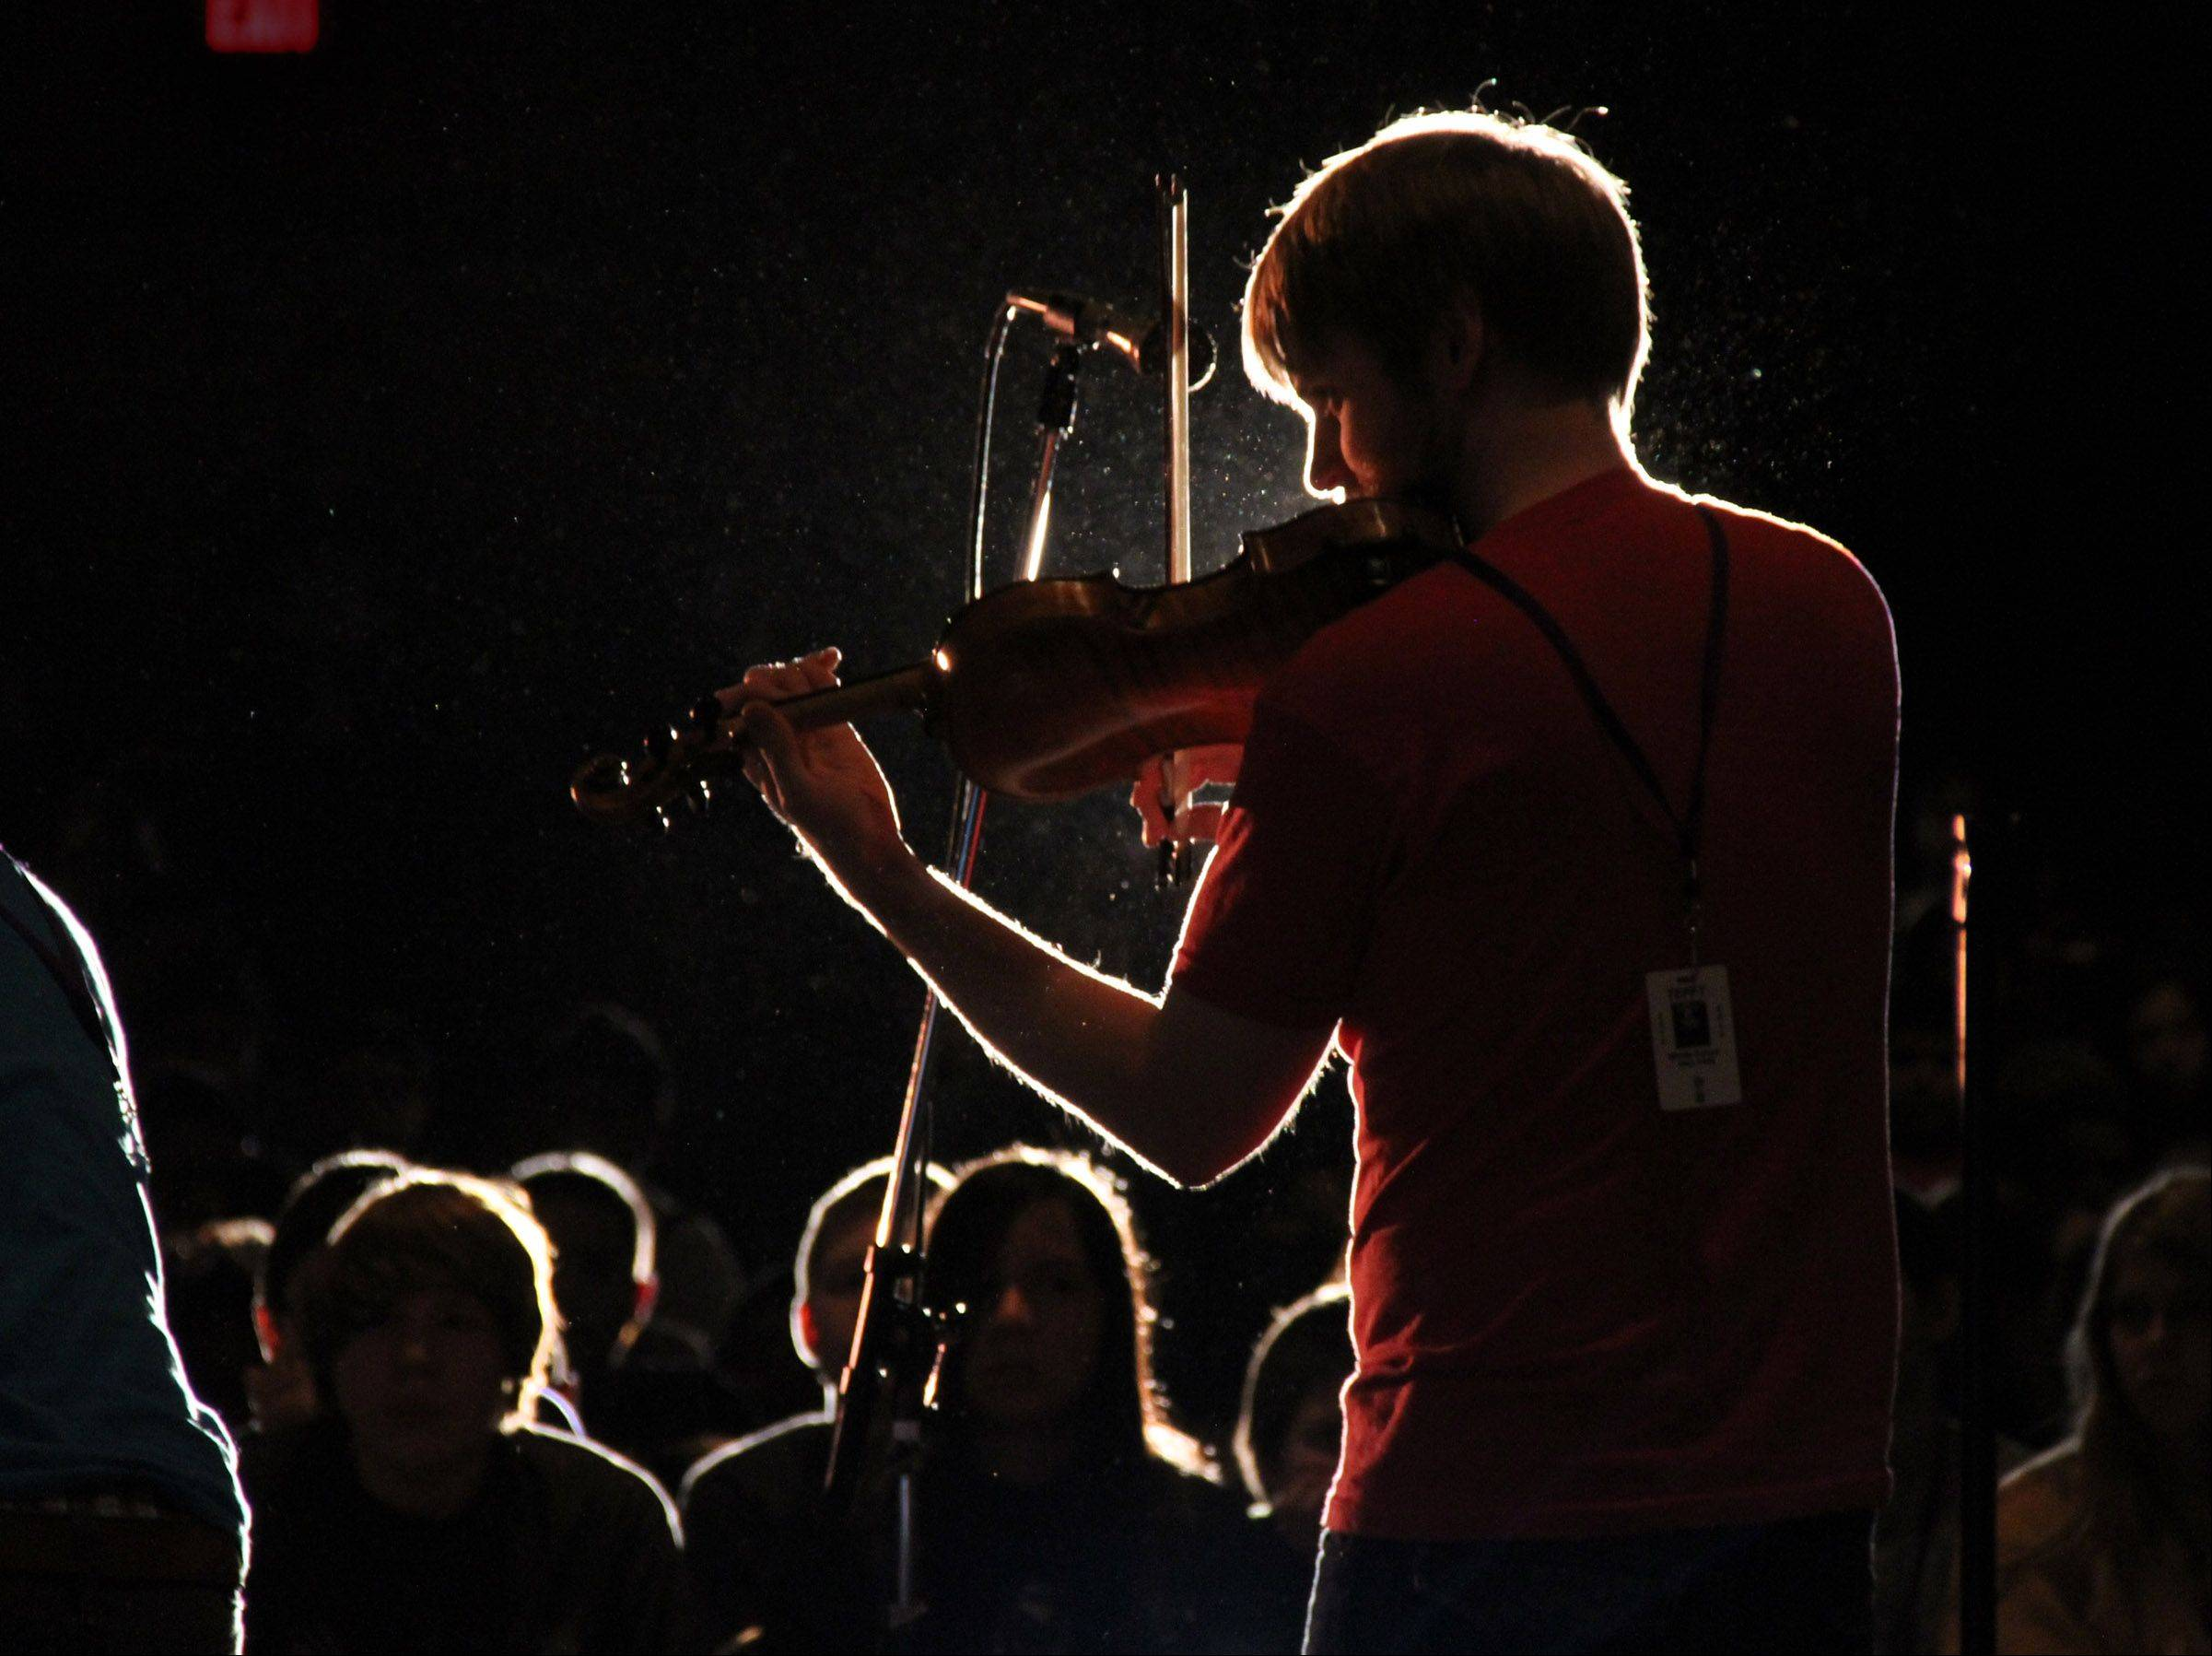 Violinist Zachary De Pue steps to the front of the stage.